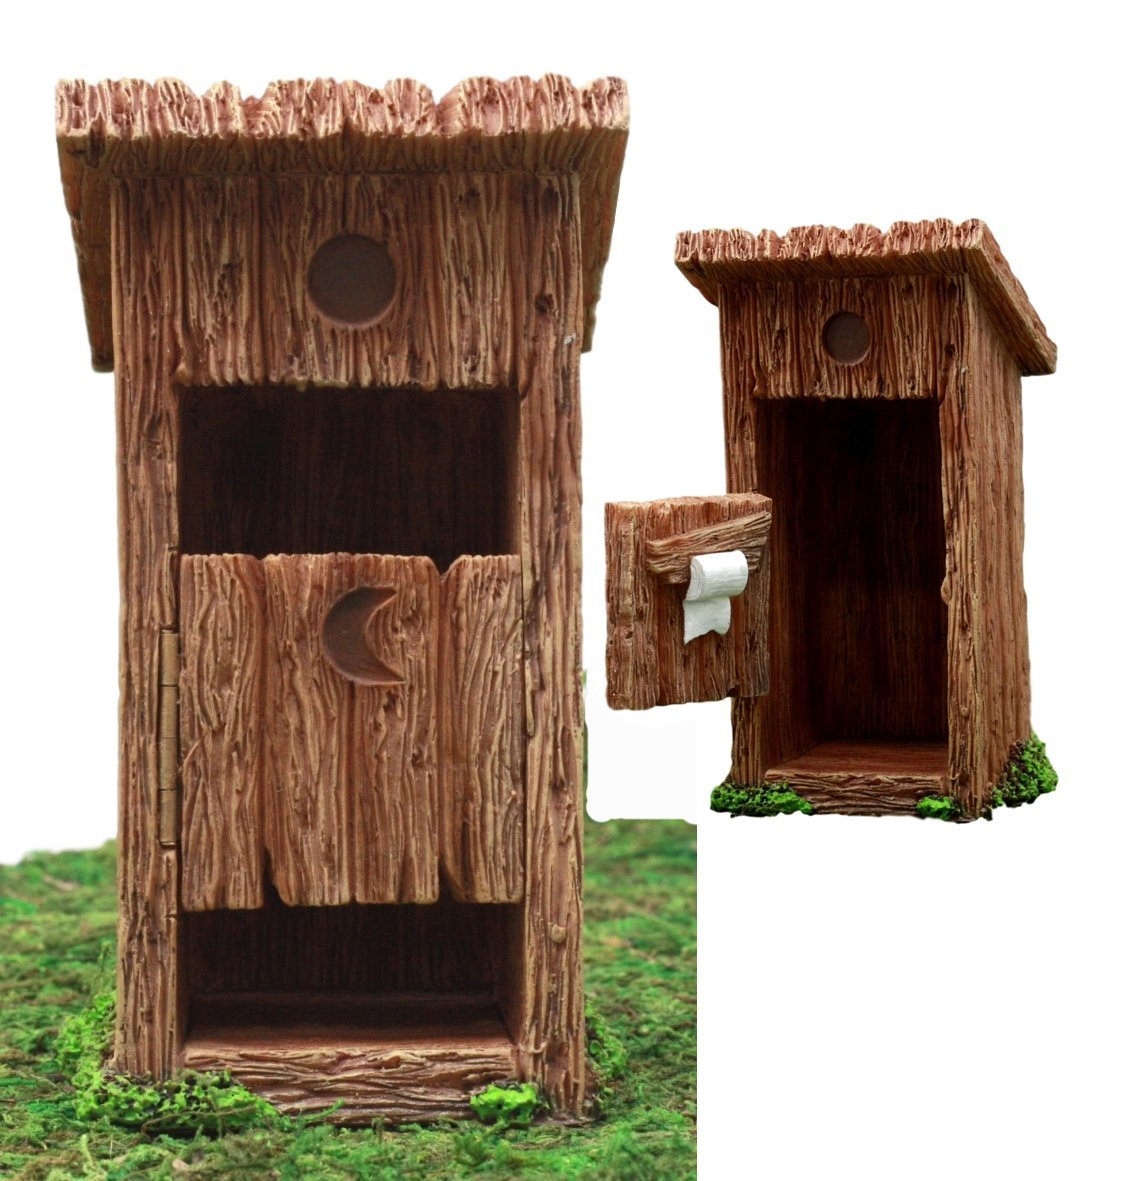 Atlantic Collectibles Enchanted Fairy Garden Miniature Colonial Rustic Toilet Outhouse With Hinged Door & Toilet Roll Setup Figurine Do It Yourself Ideas For Your Home